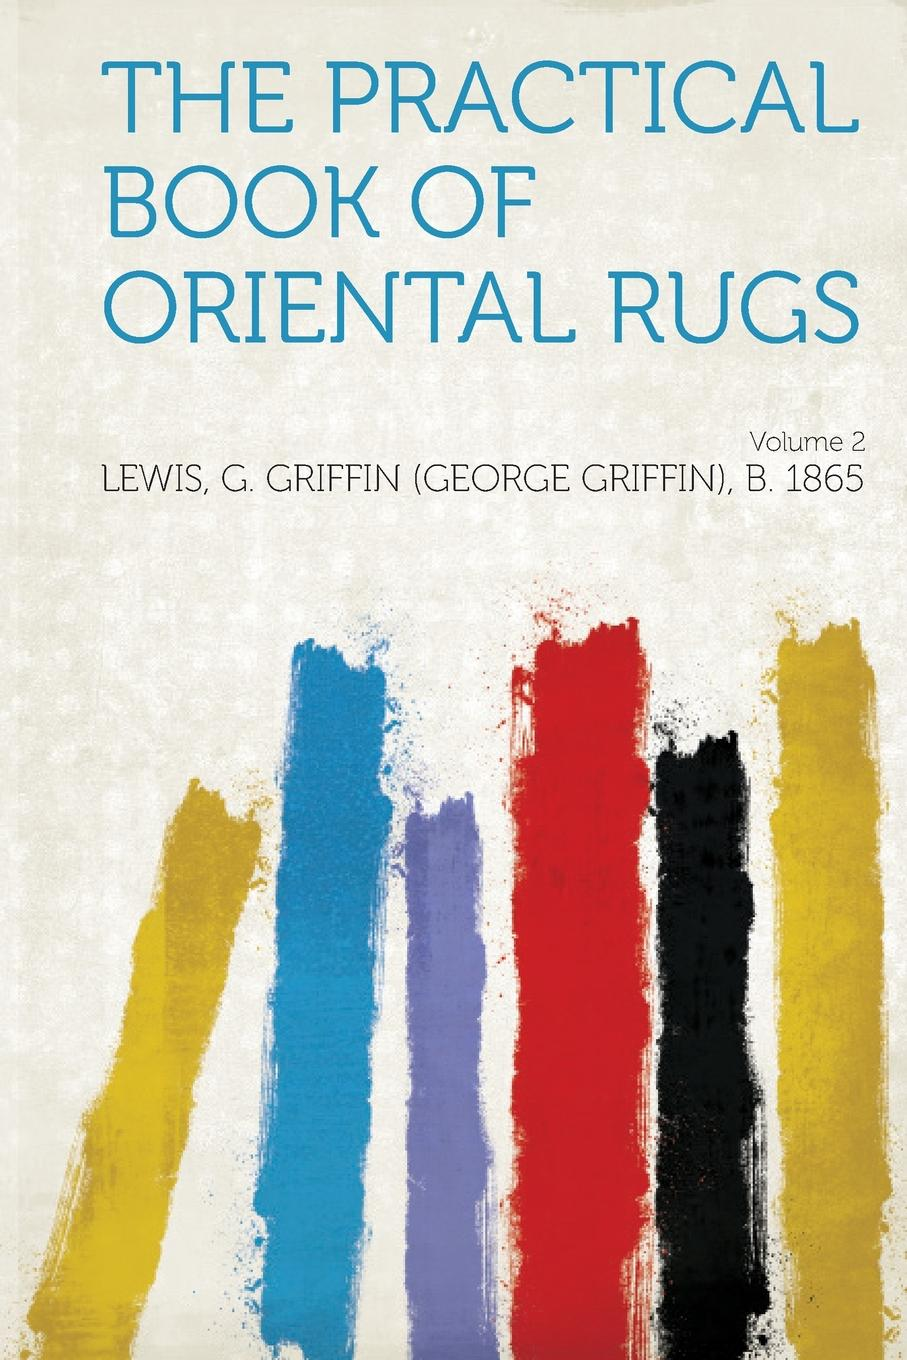 Lewis G. Griffin (George Griffin) 1865 The Practical Book of Oriental Rugs Volume 2 george griffin lewis the mystery of the oriental rug